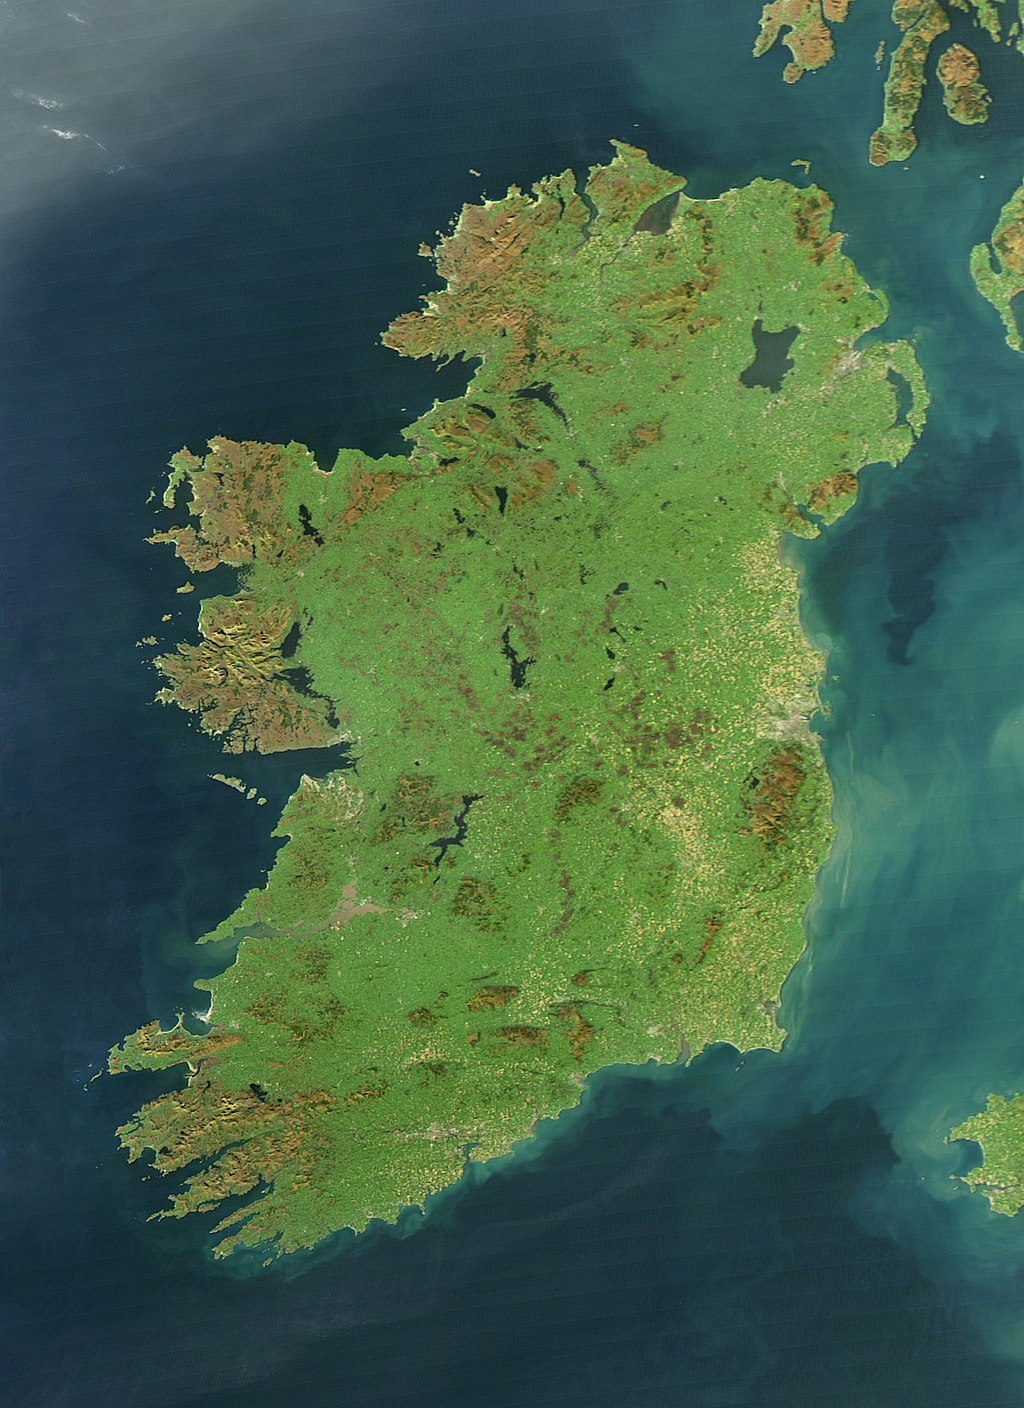 https://upload.wikimedia.org/wikipedia/commons/thumb/7/74/Ireland_%28MODIS%29.jpg/1024px-Ireland_%28MODIS%29.jpg